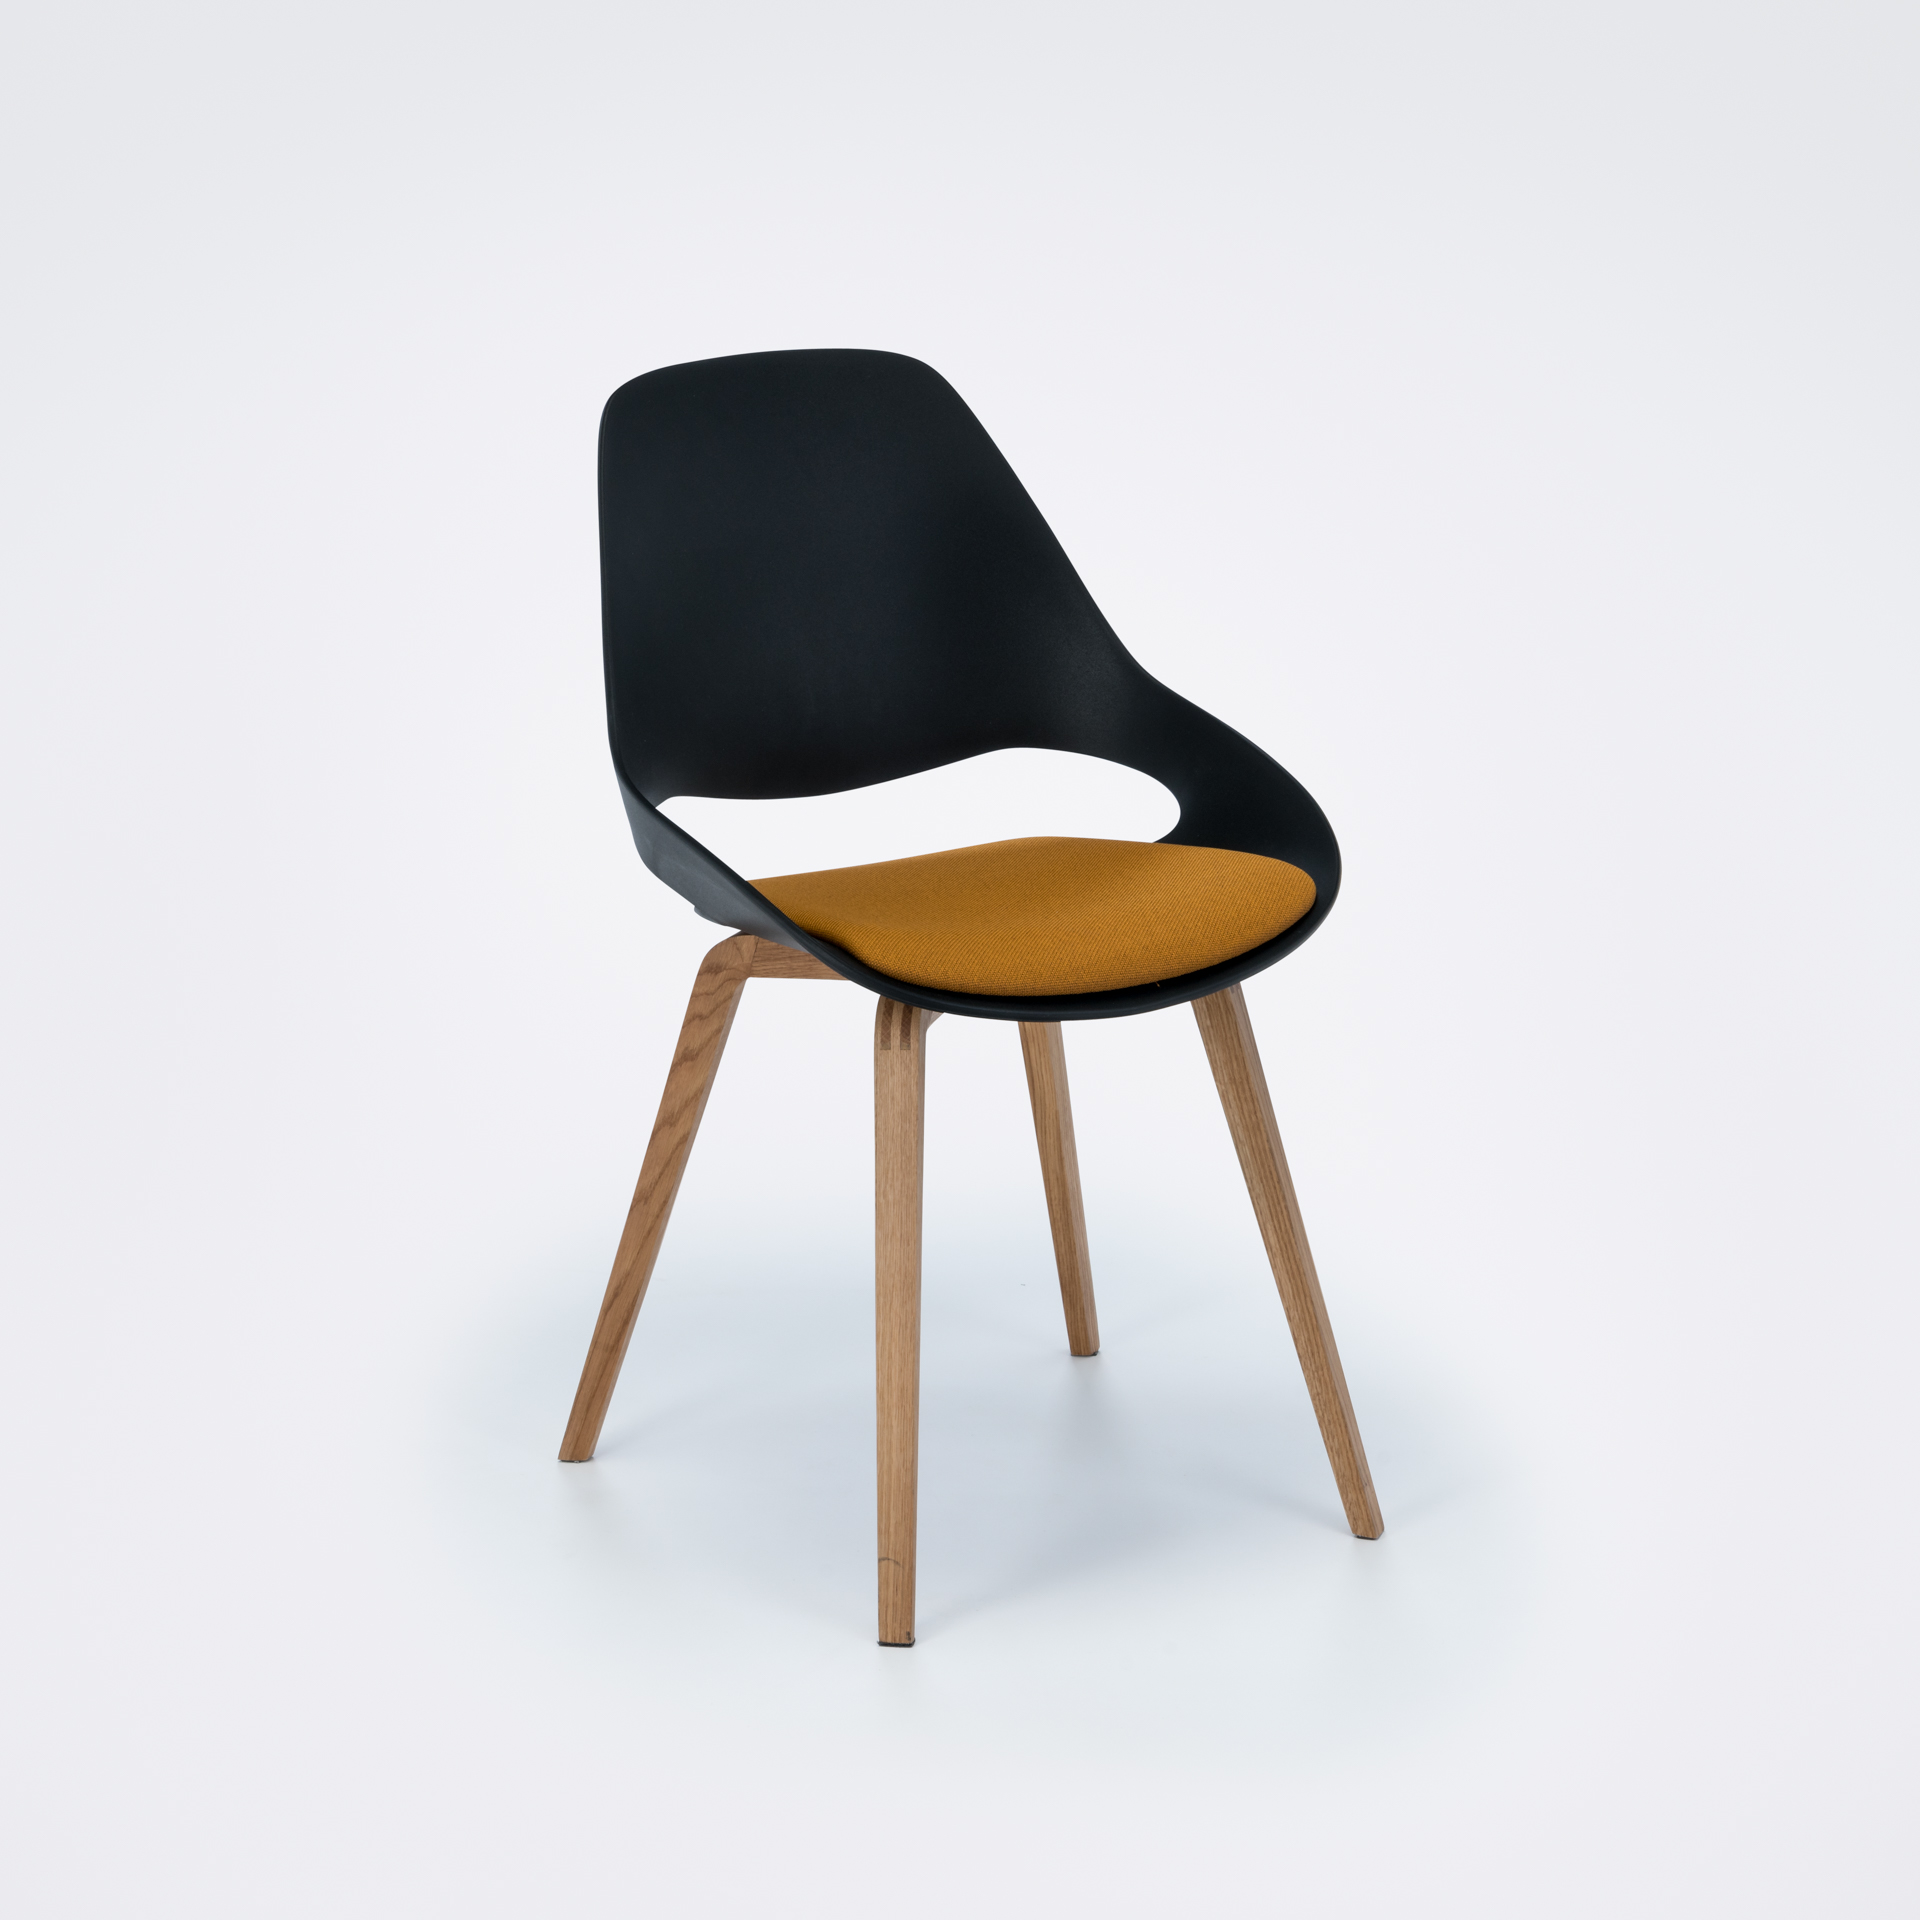 DINING CHAIR // PADDED SEAT // Black/amber // Oiled Oak legs